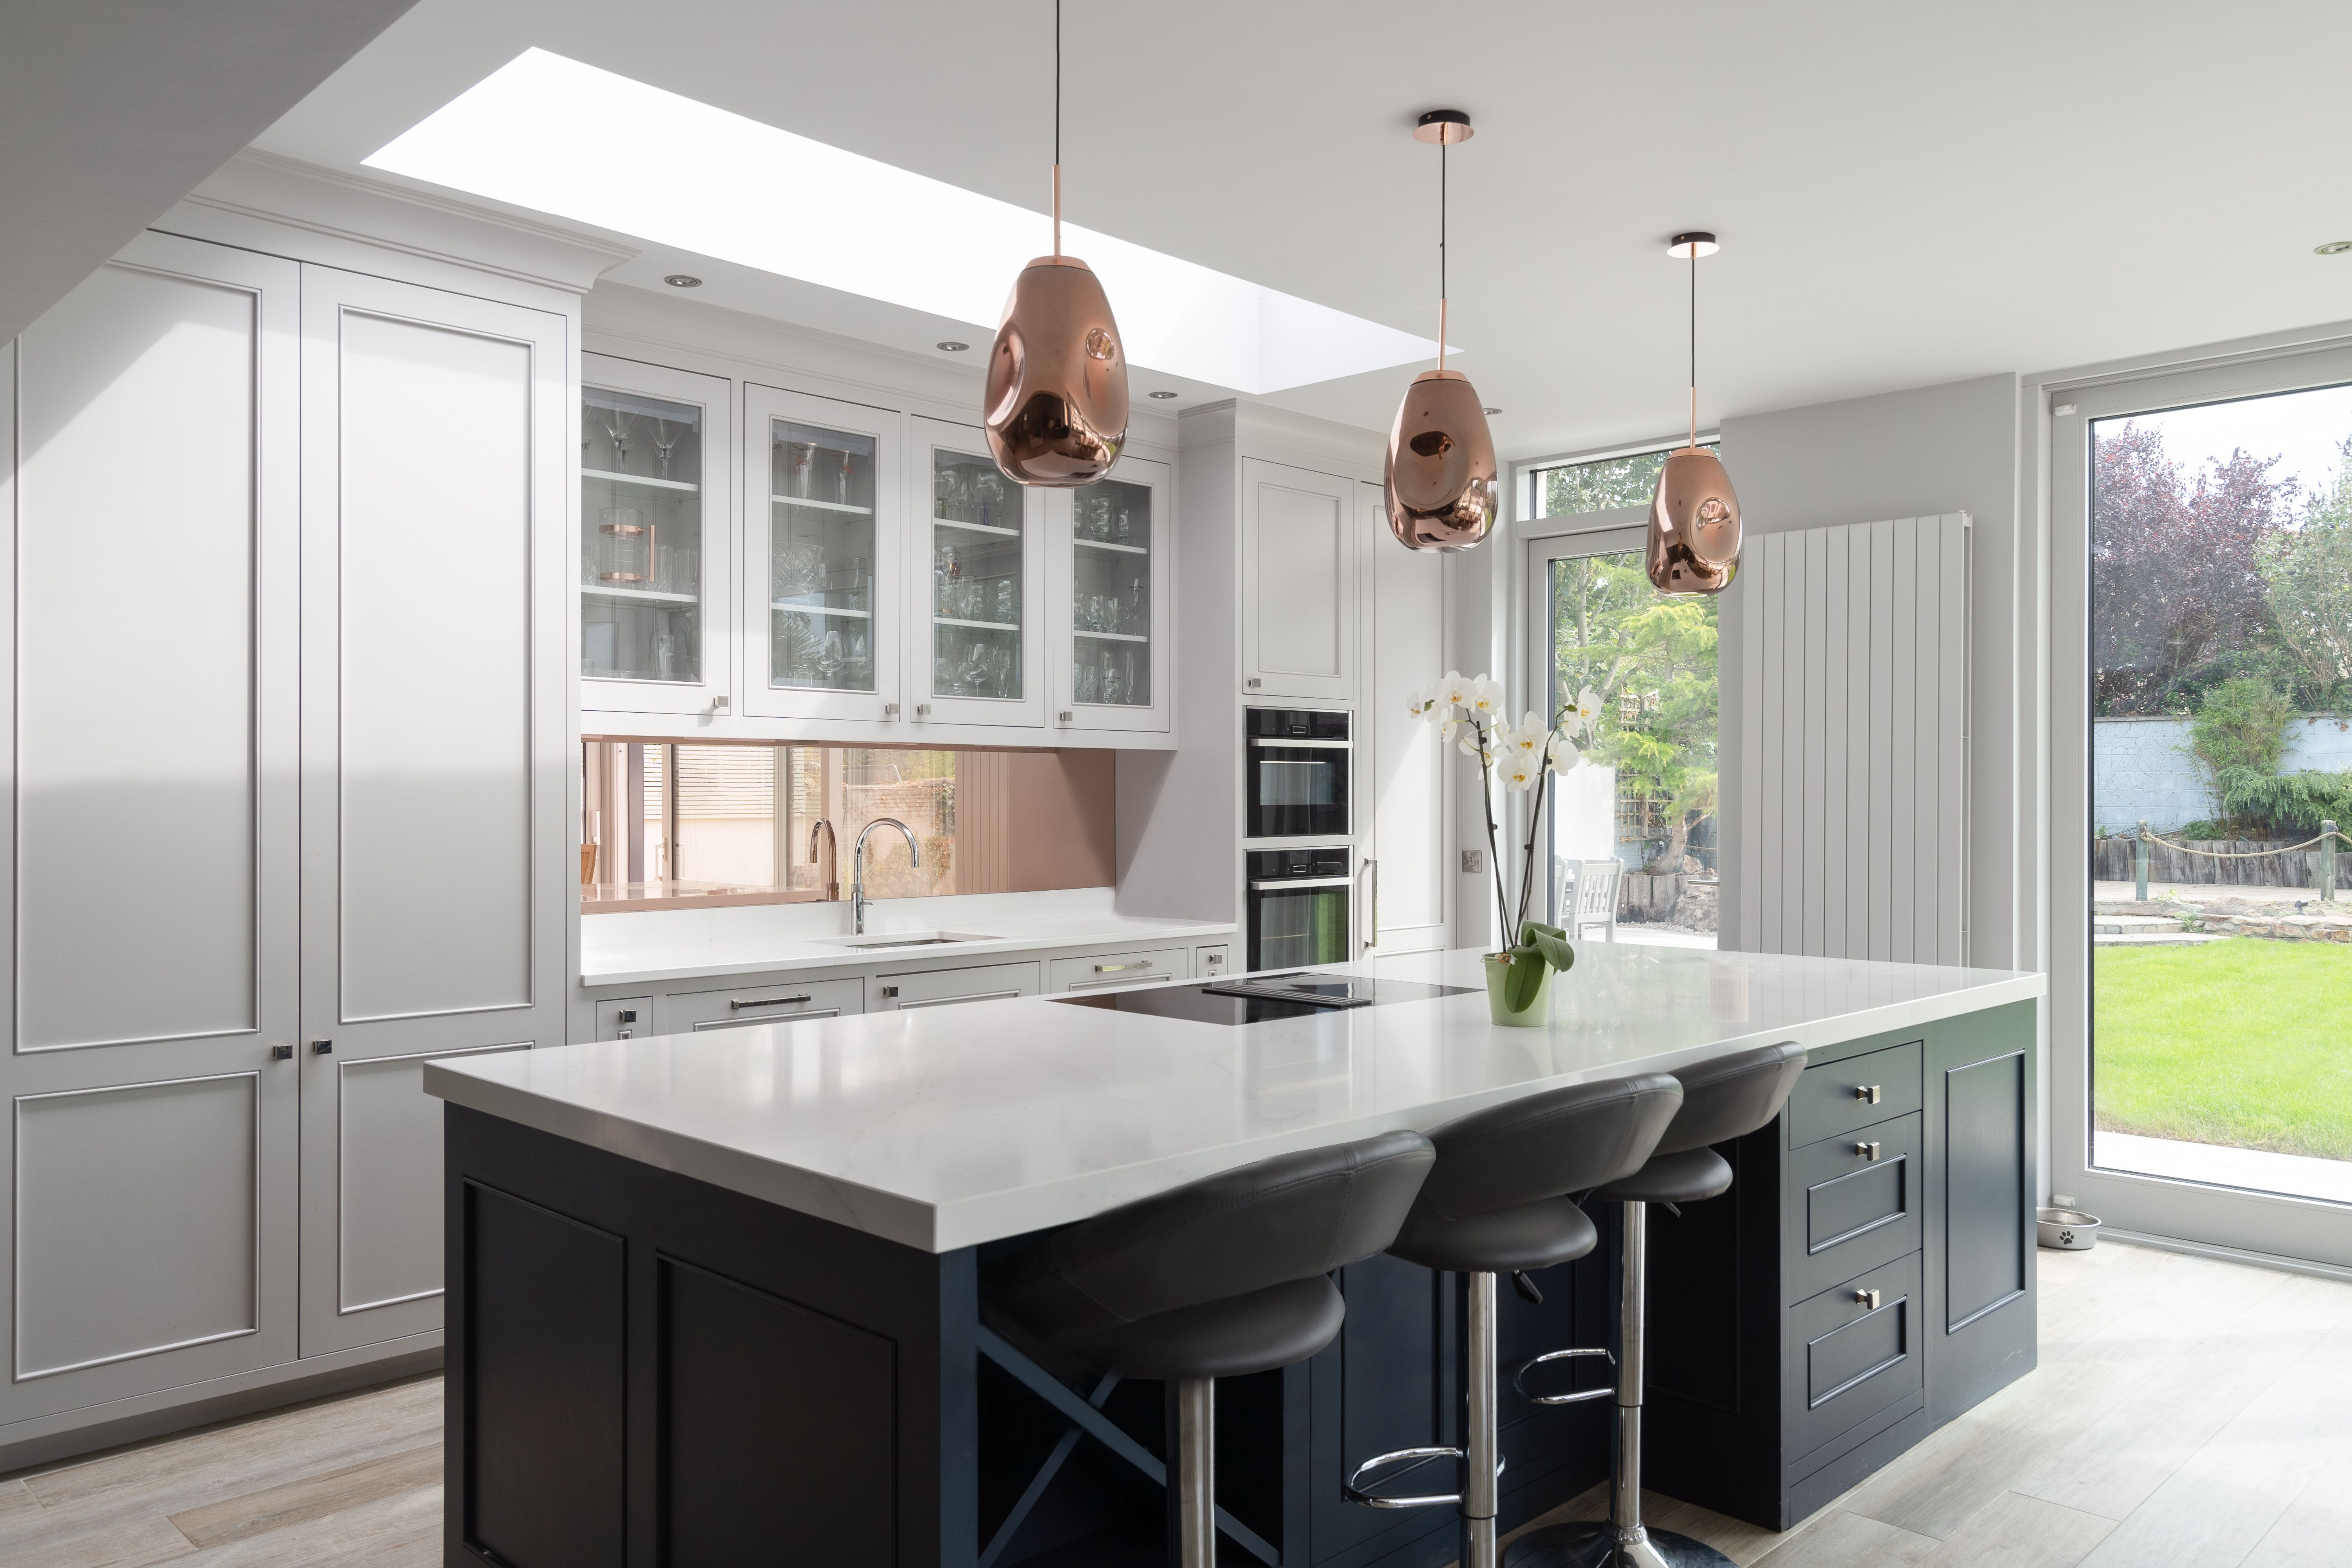 Stunning Kitchen Design With Beautiful Marble Island in